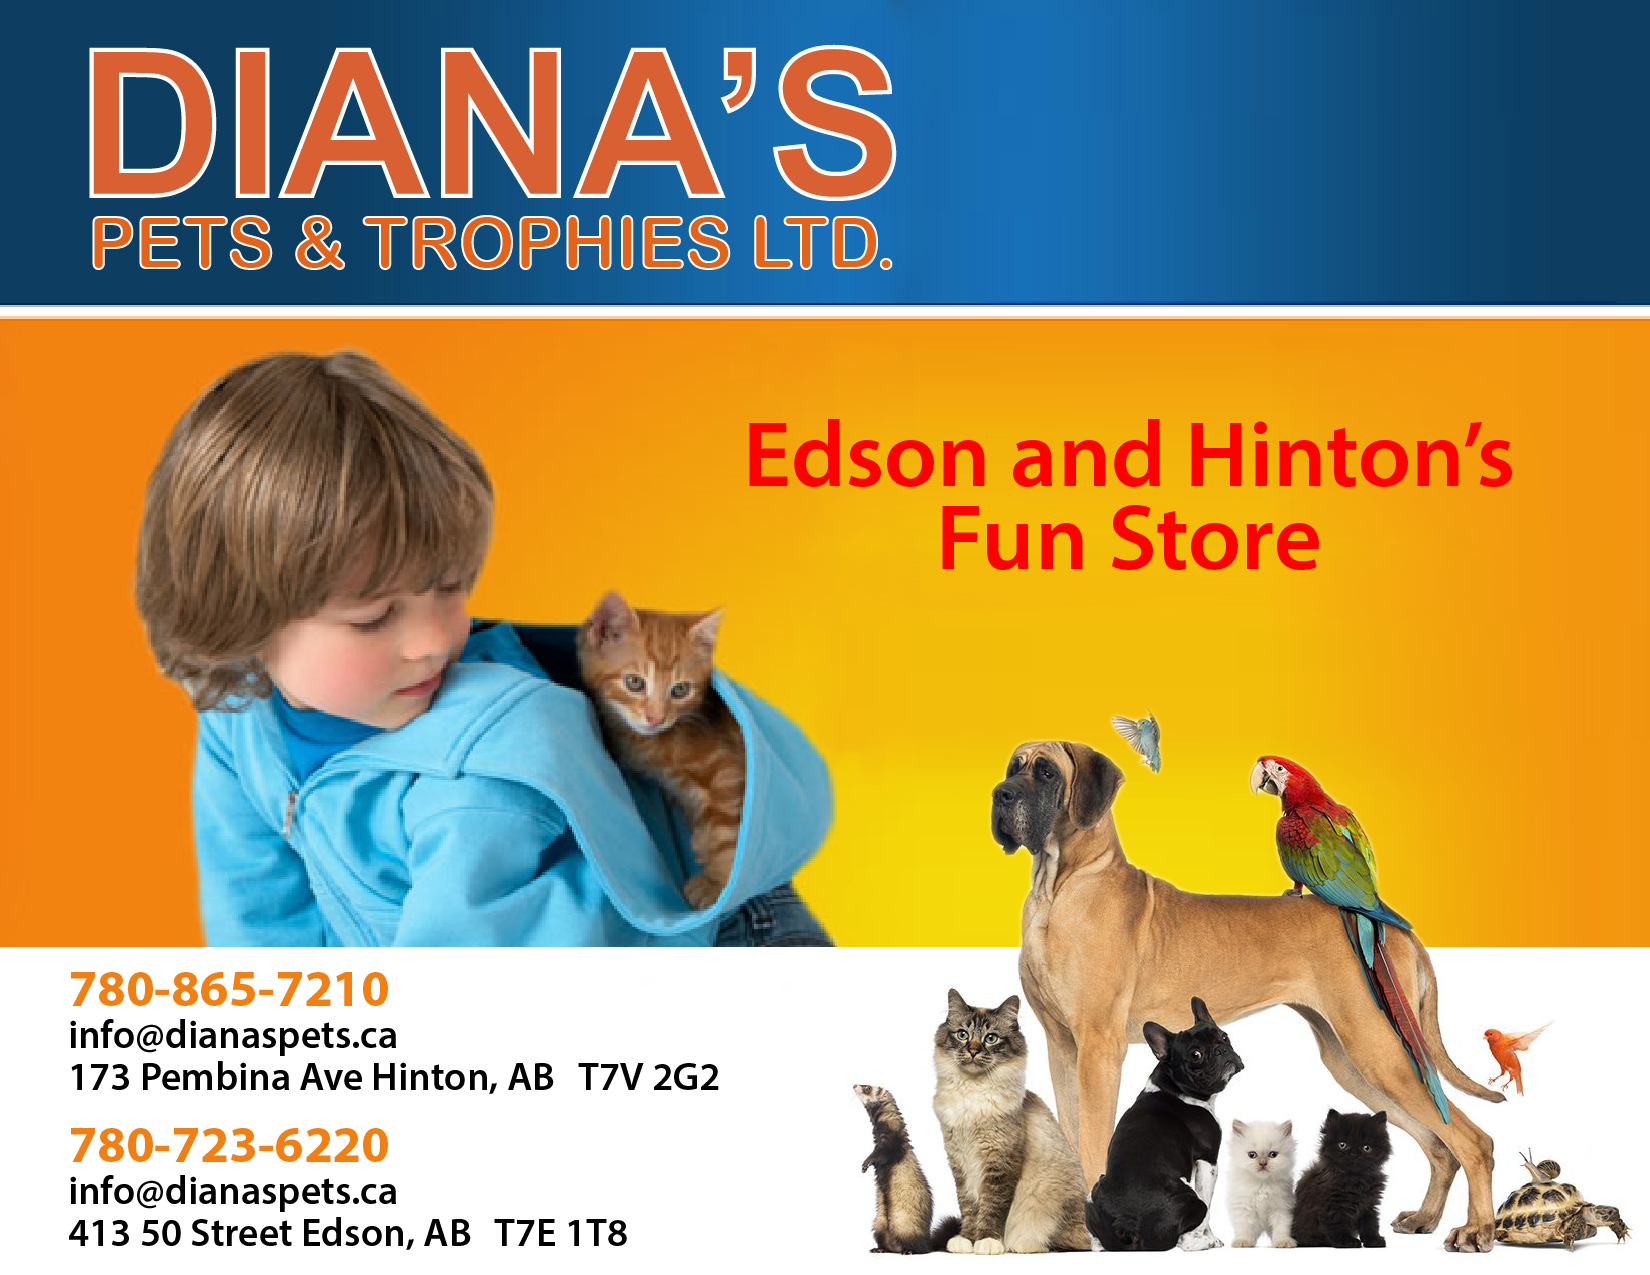 Diana's Pets and Trophies Ltd.